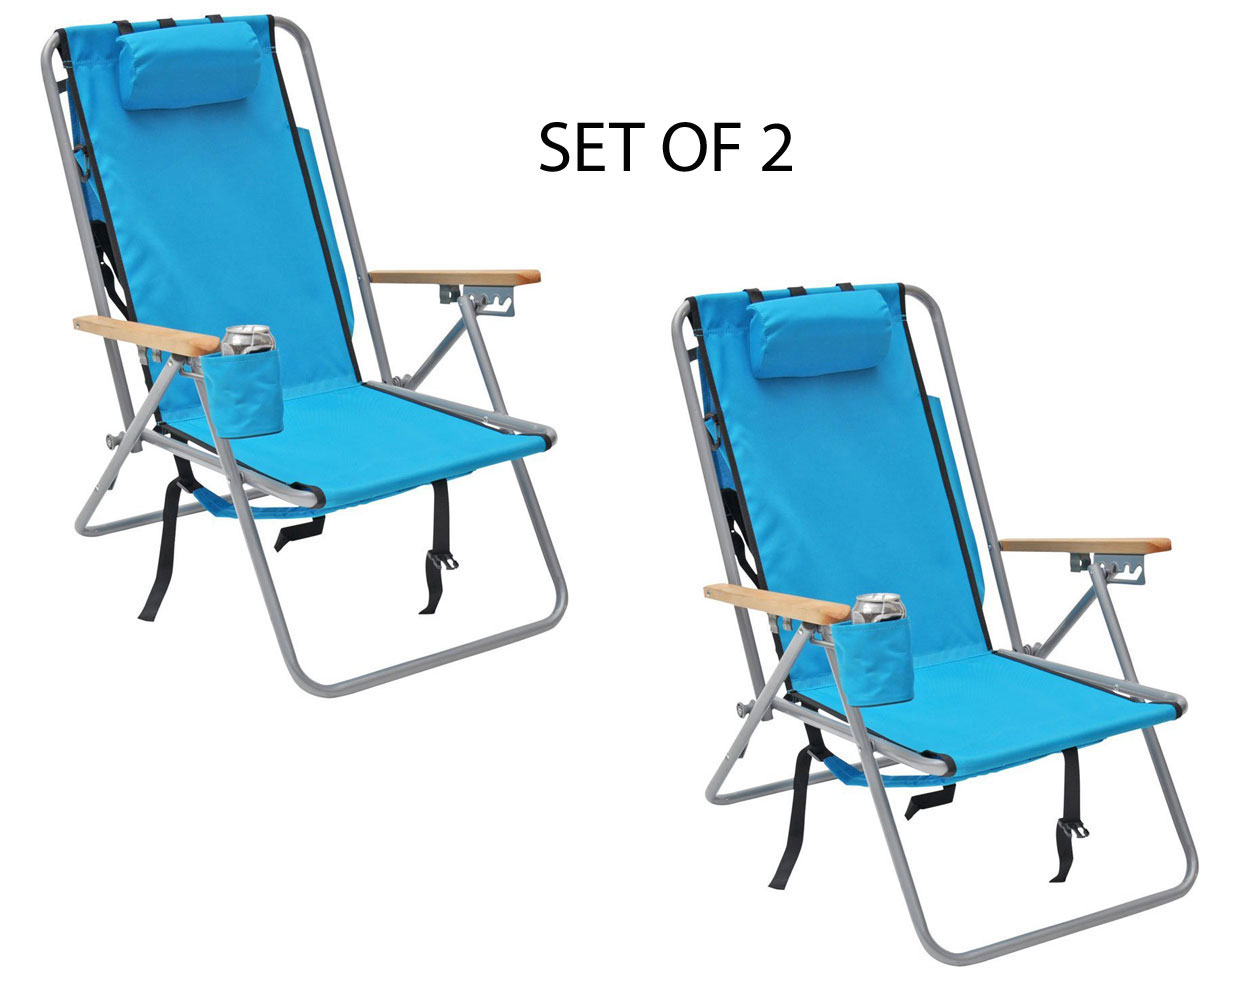 backpack chairs navy and white accent chair deluxe steel beach camping with storage pouch set of 2 walmart com